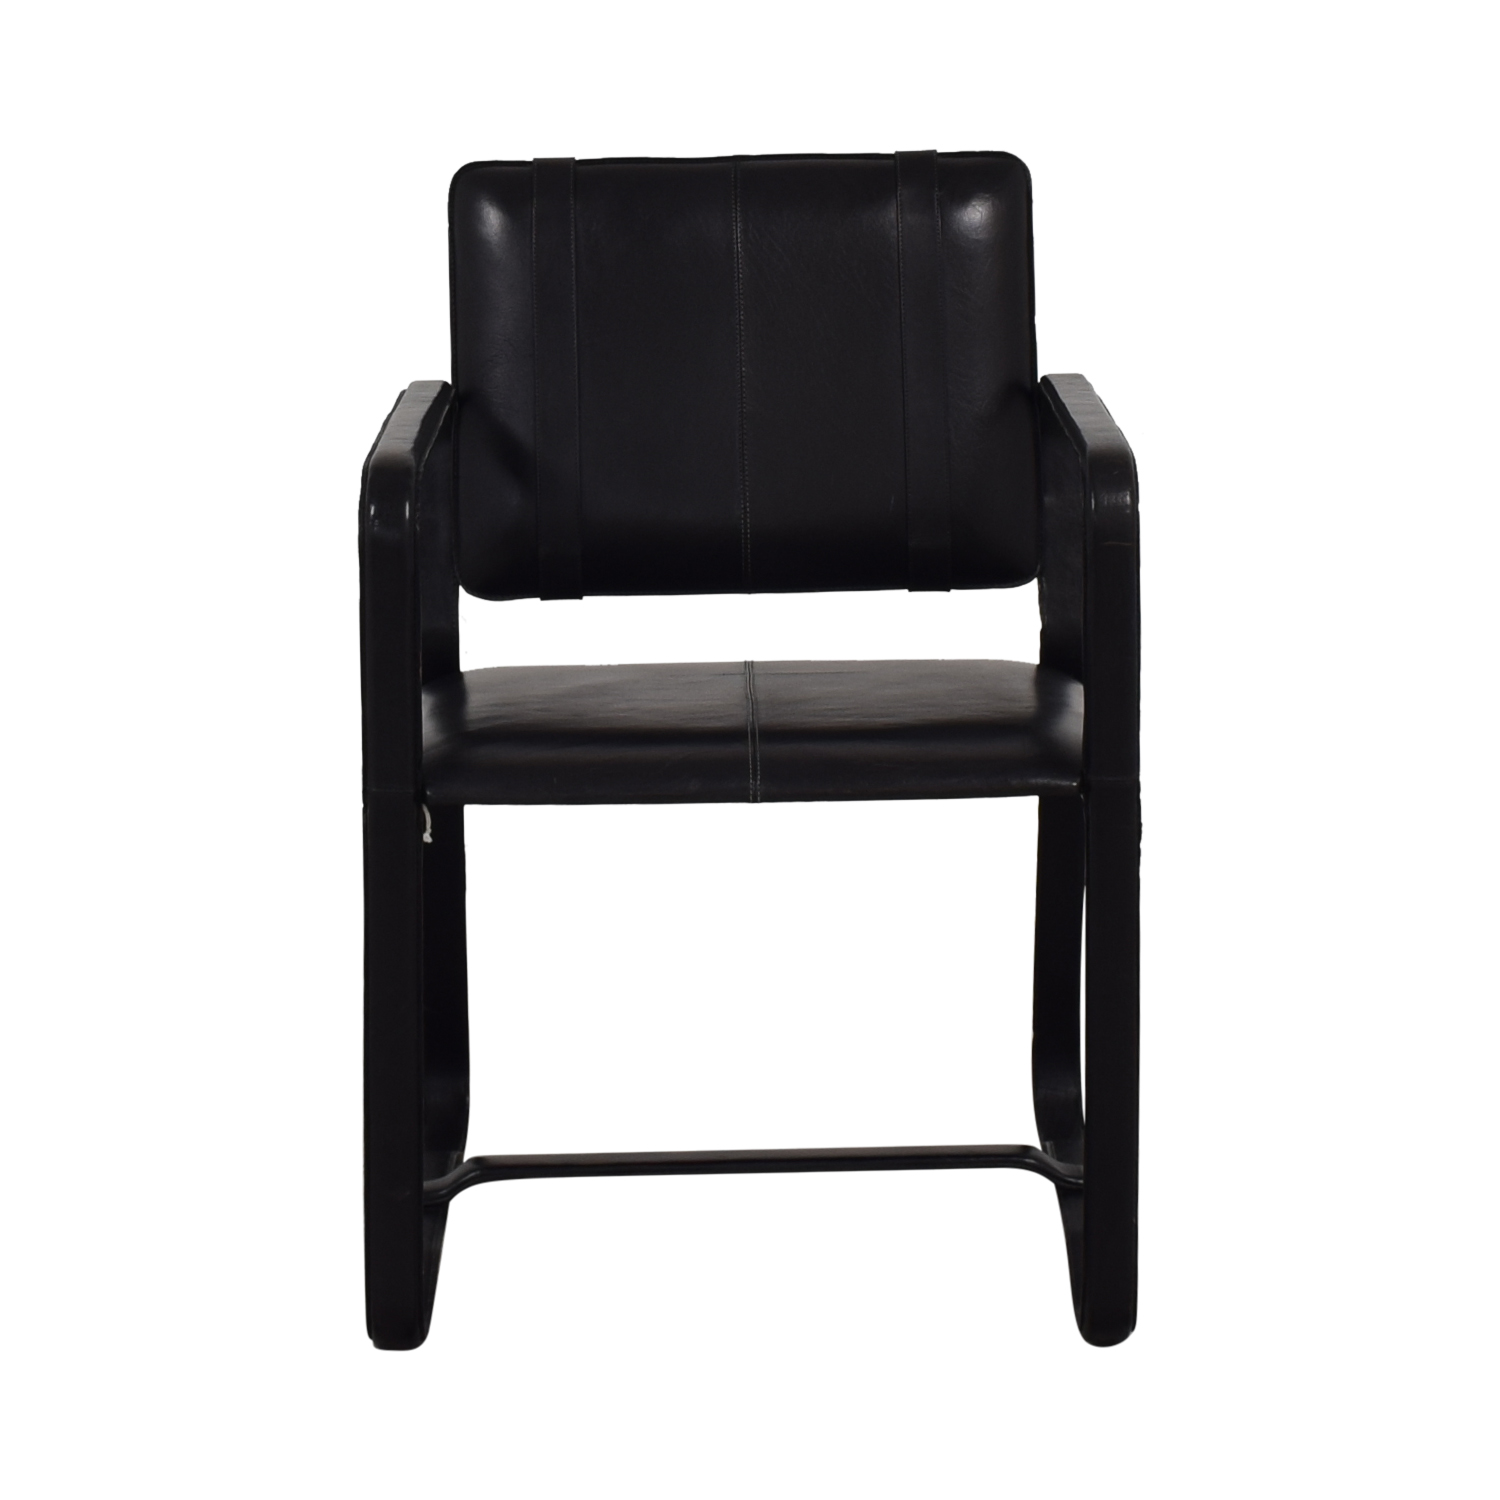 Restoration Hardware Restoration Hardware Lounge Chair dimensions